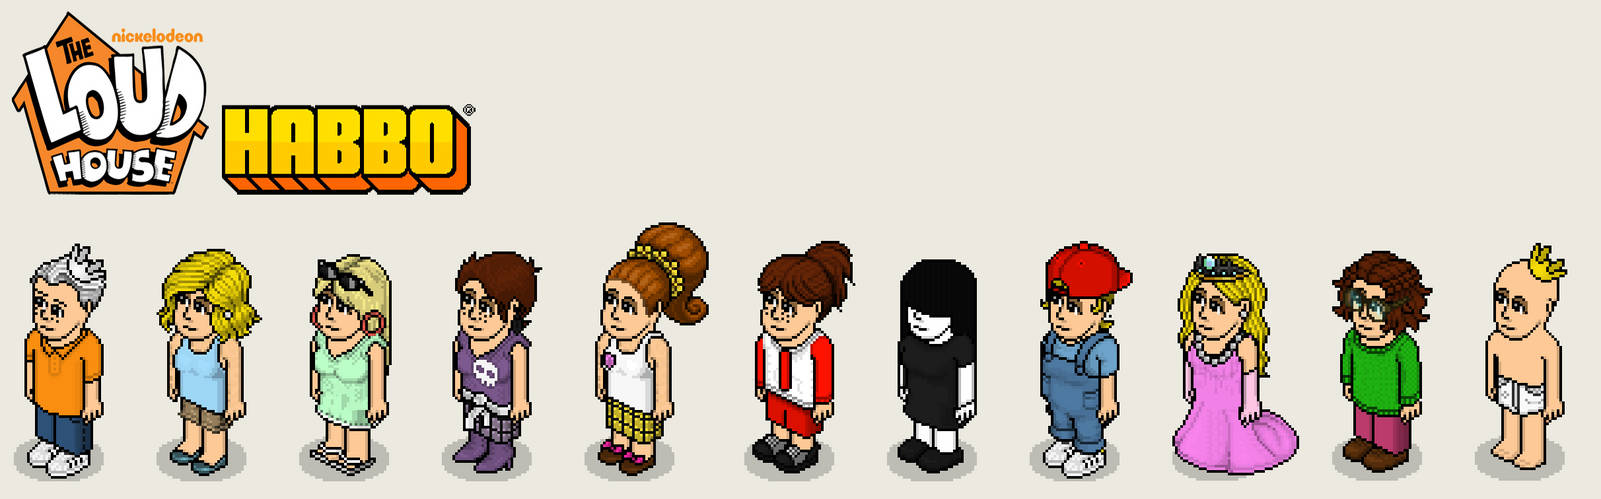 The Loud House in Habbo style